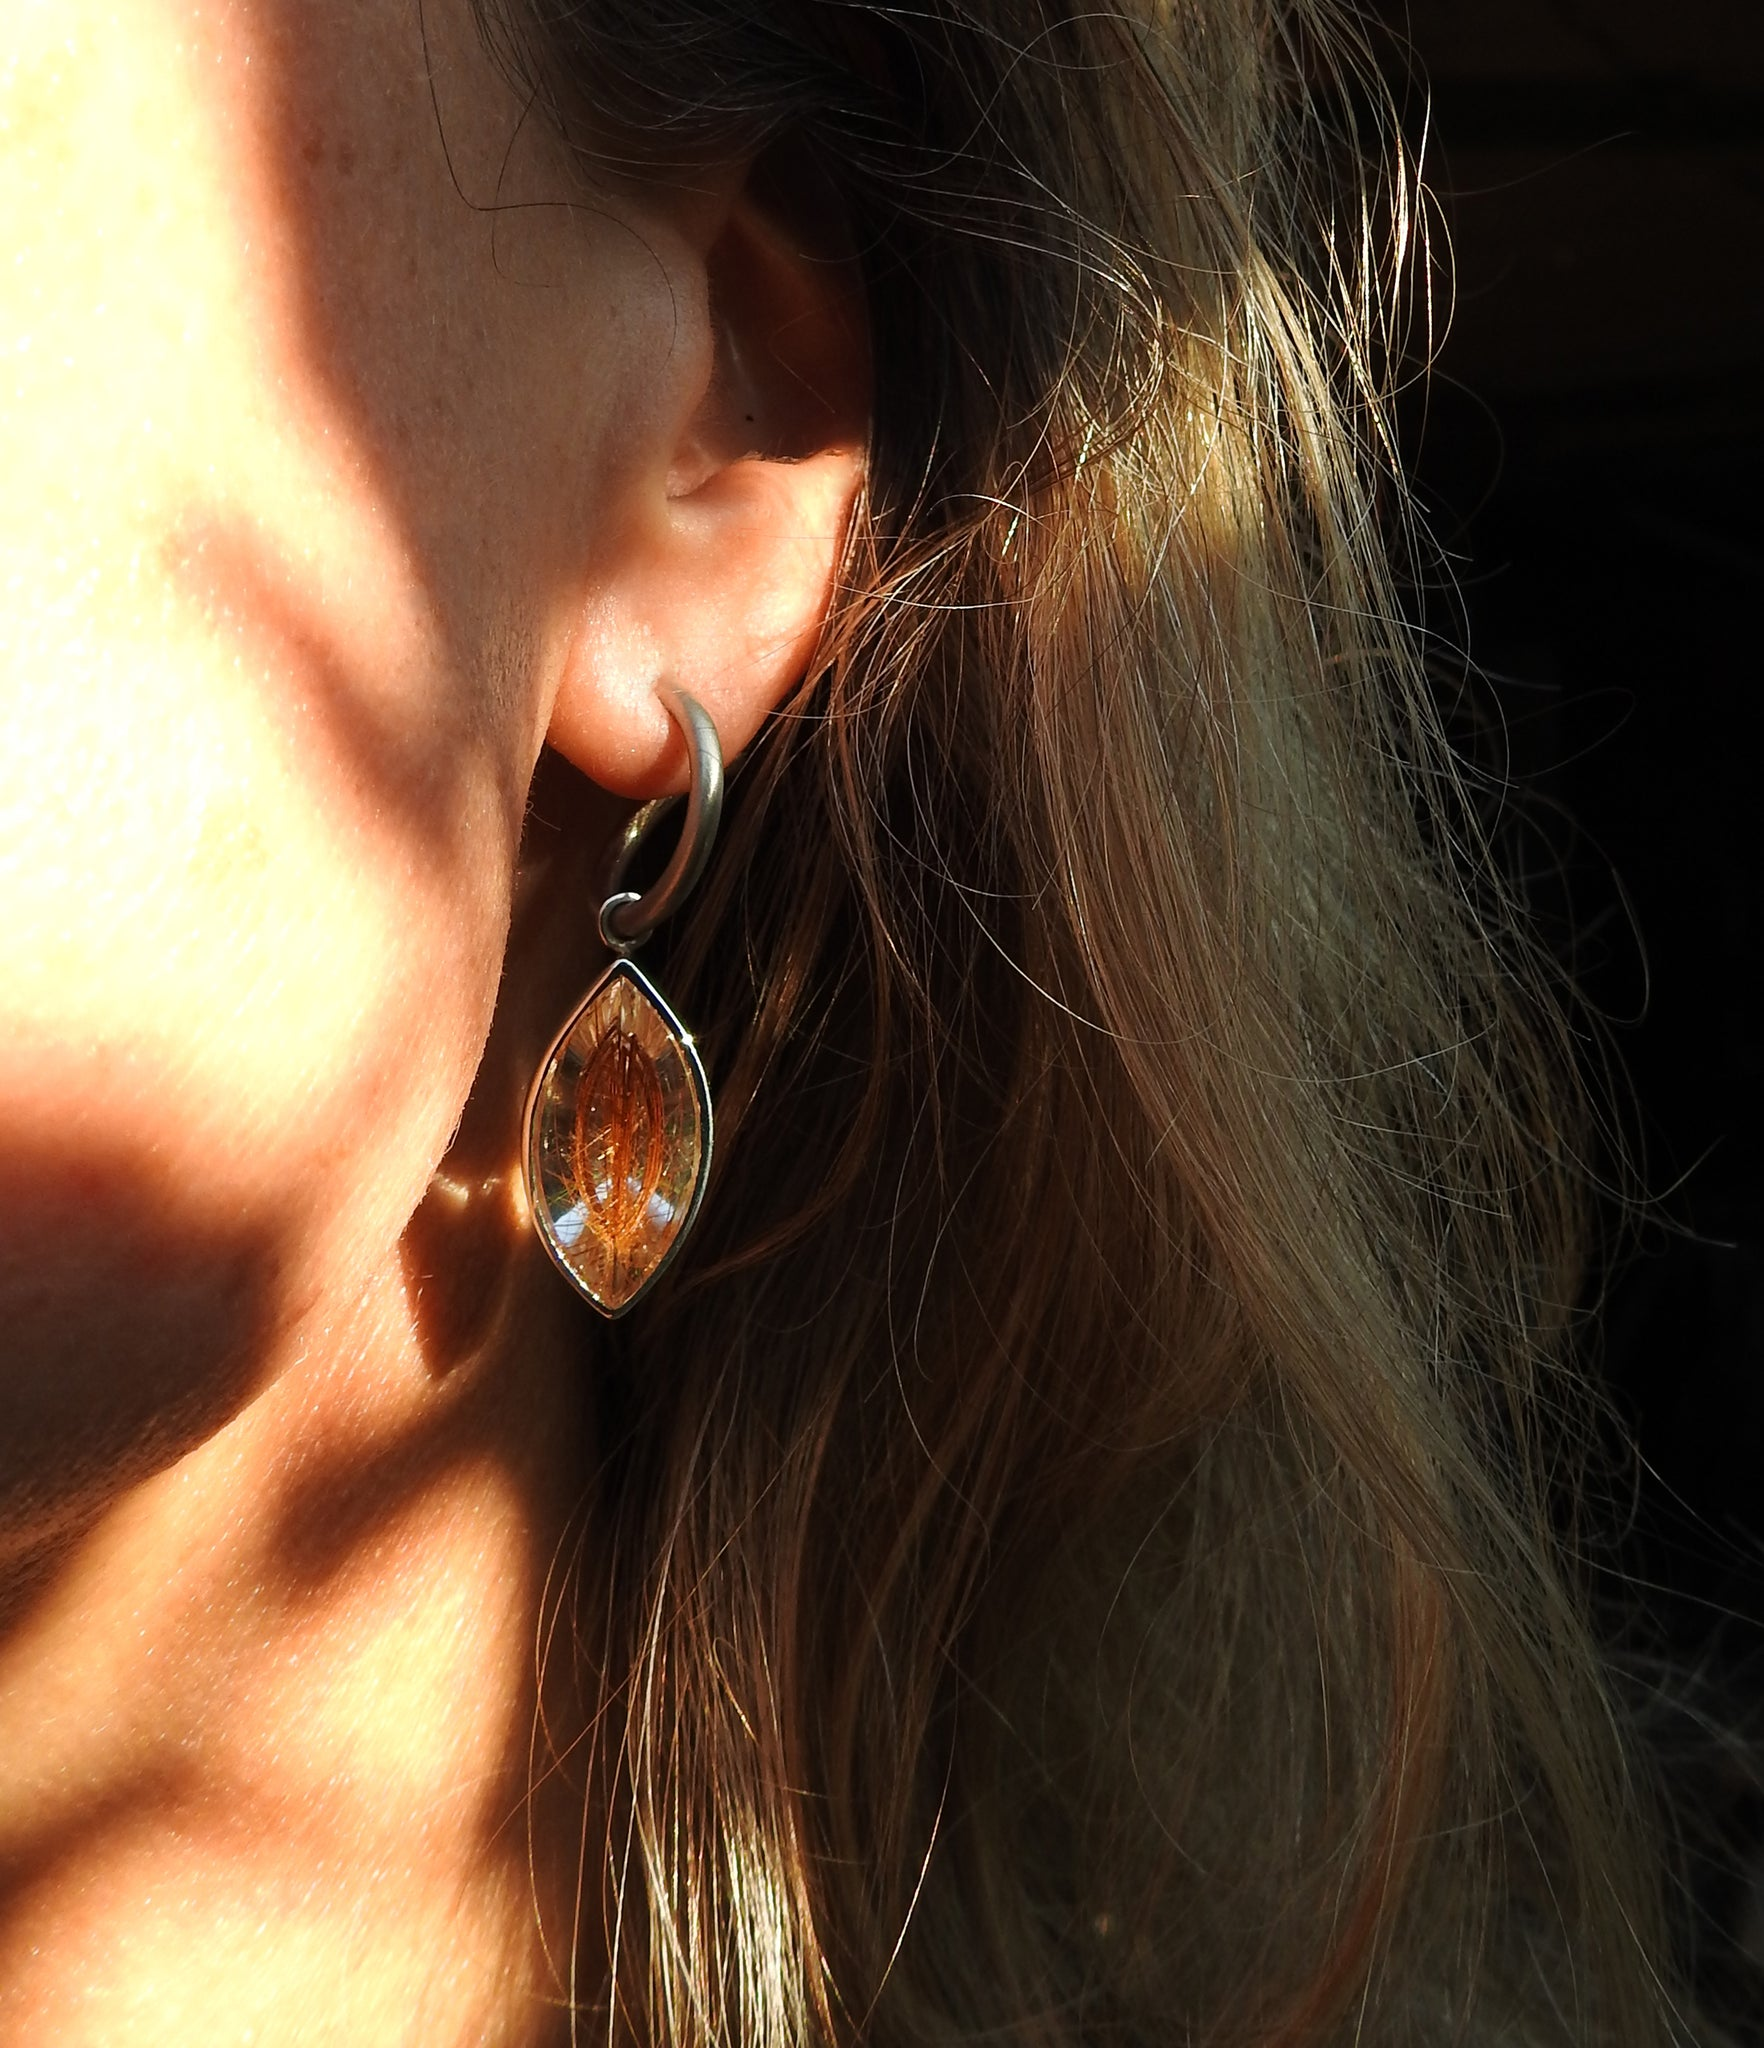 Earrings made by ZEALmetal, Nicole Horlor, Kingston, ON, Canada